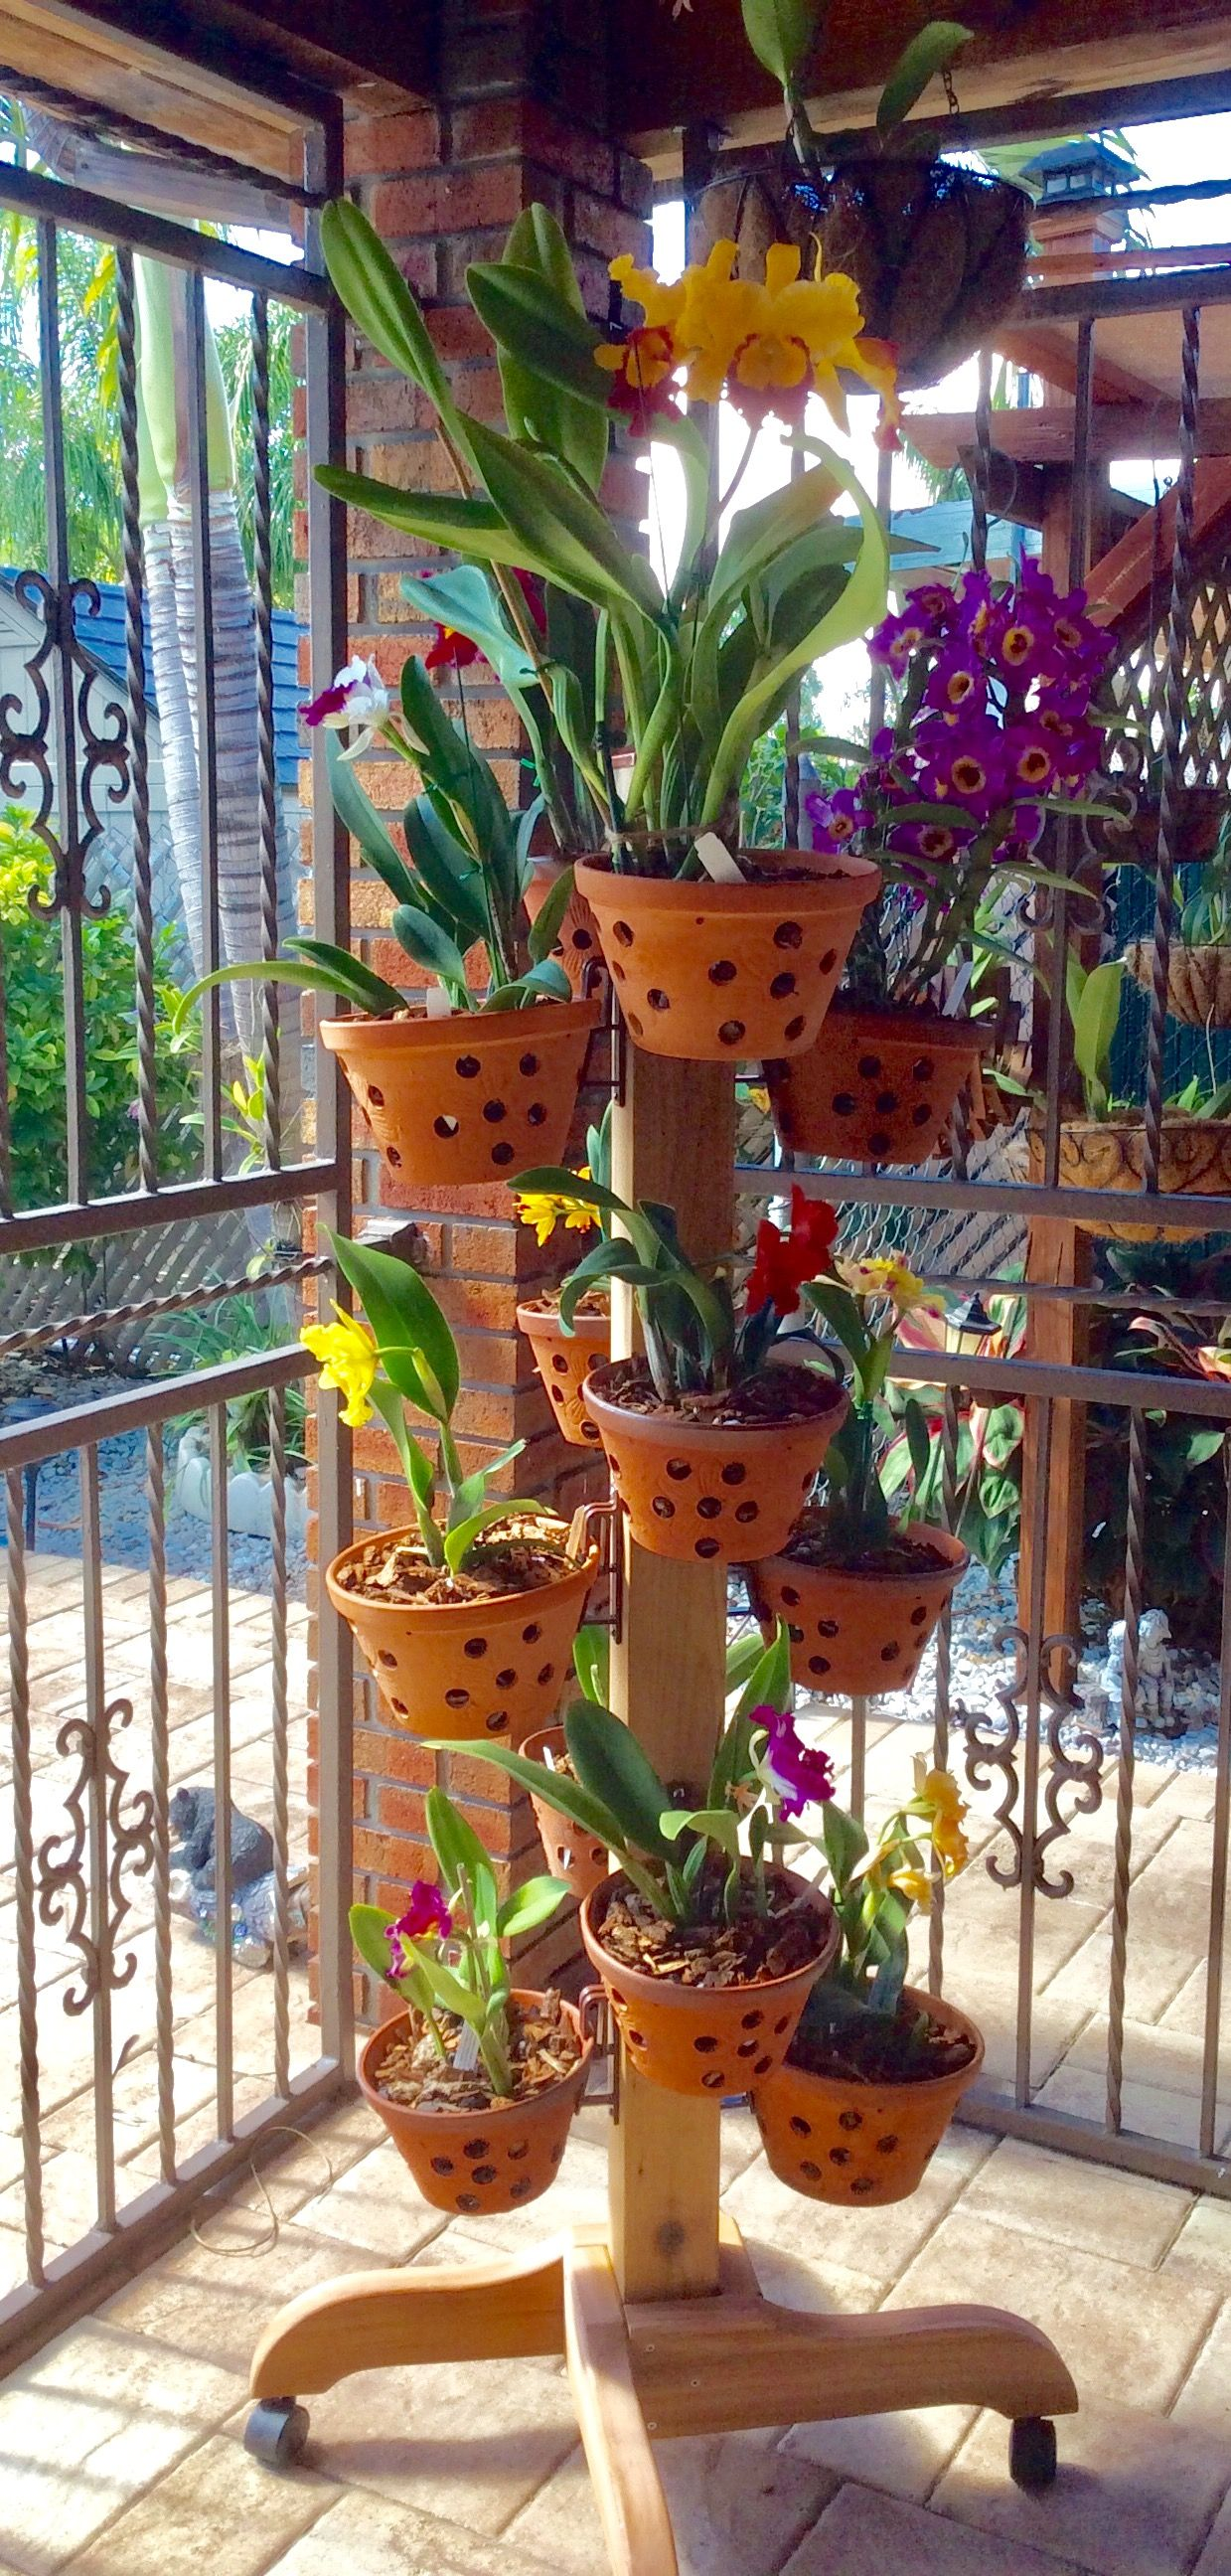 12 Amazing Ideas For Indoor Herb Gardens | Orchid house ... on Amazing Plant Stand Ideas  id=55380